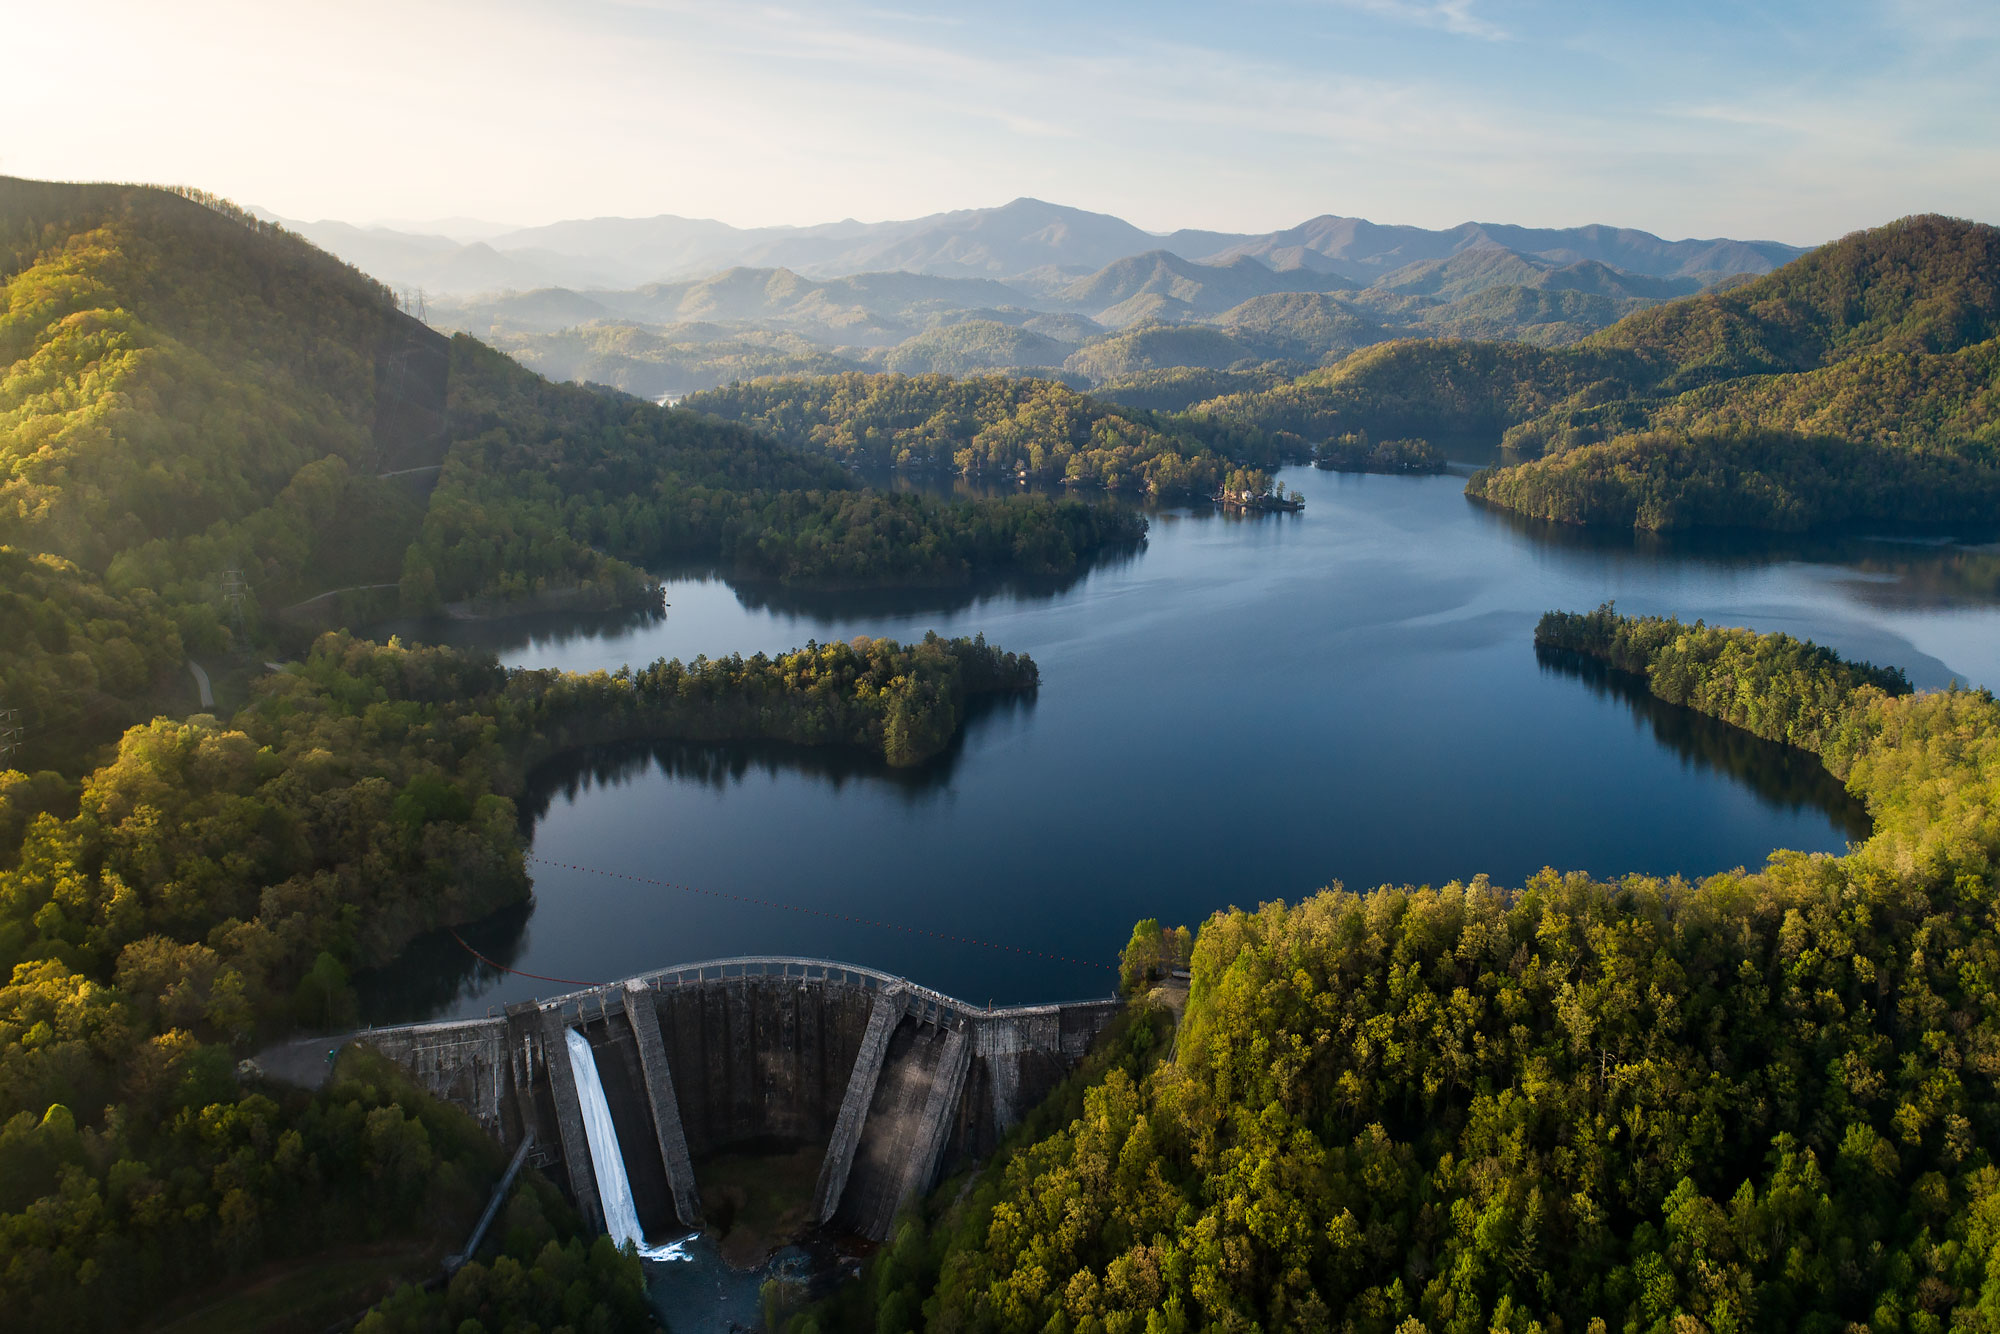 Aerial view of hydroelectric dam and reservoir |  Scott Gable industrial photographer